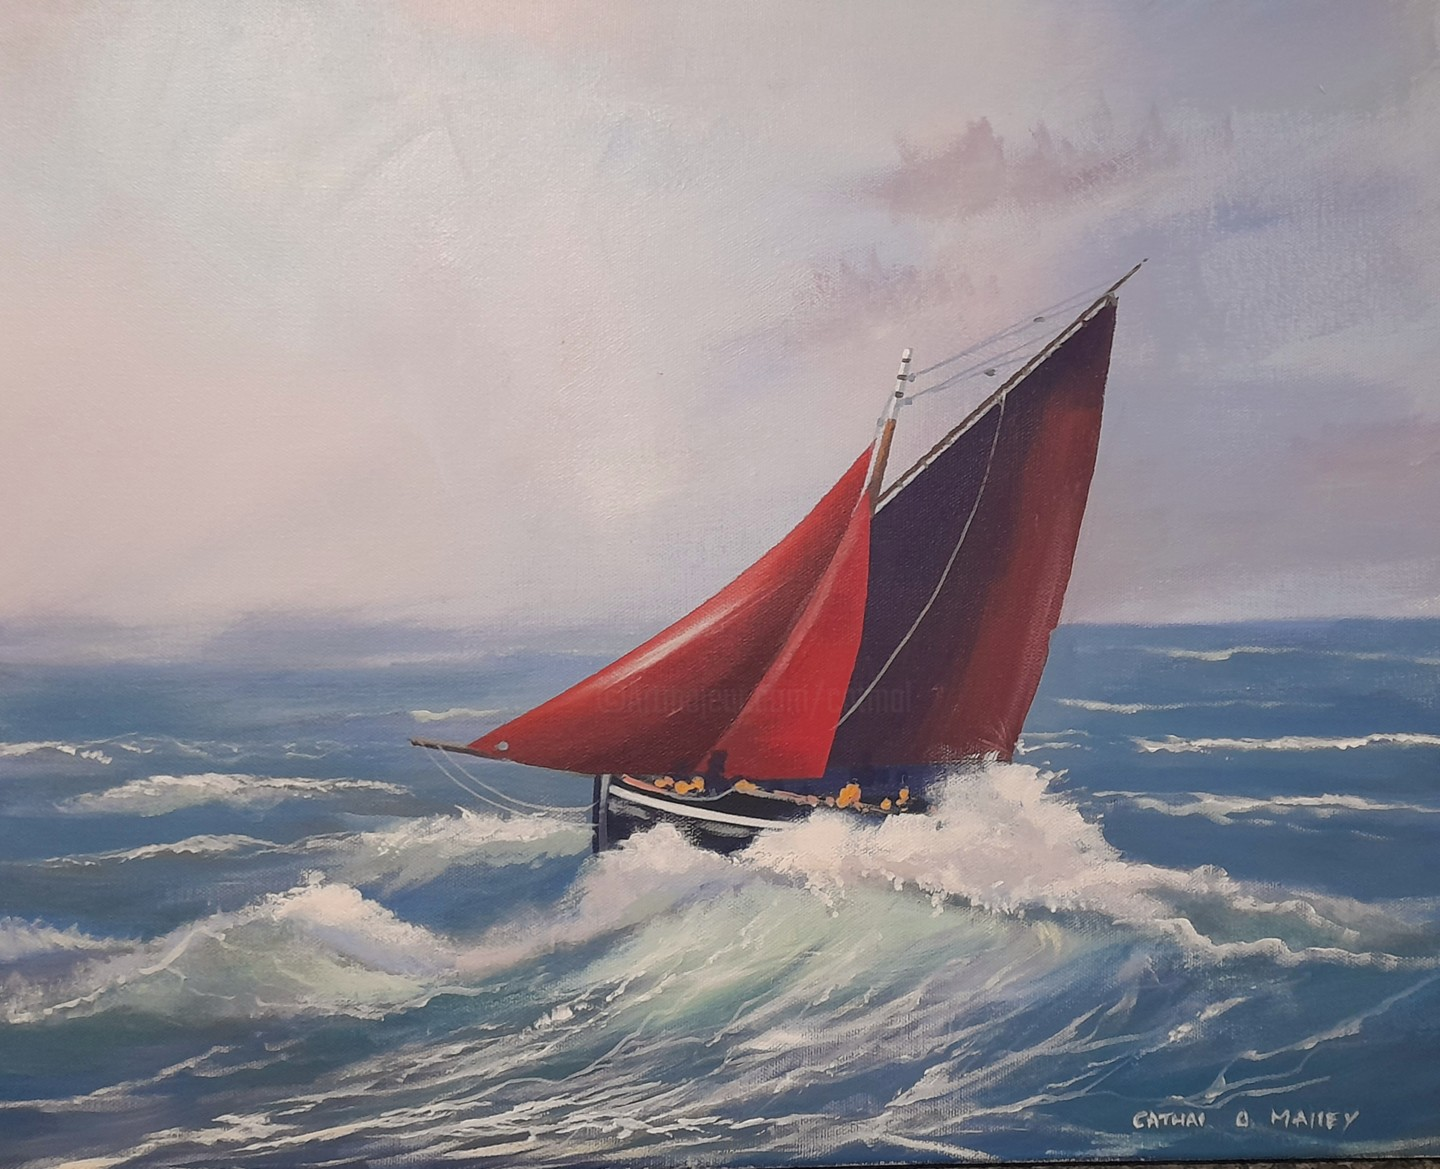 Cathal O Malley - Sailing home mar